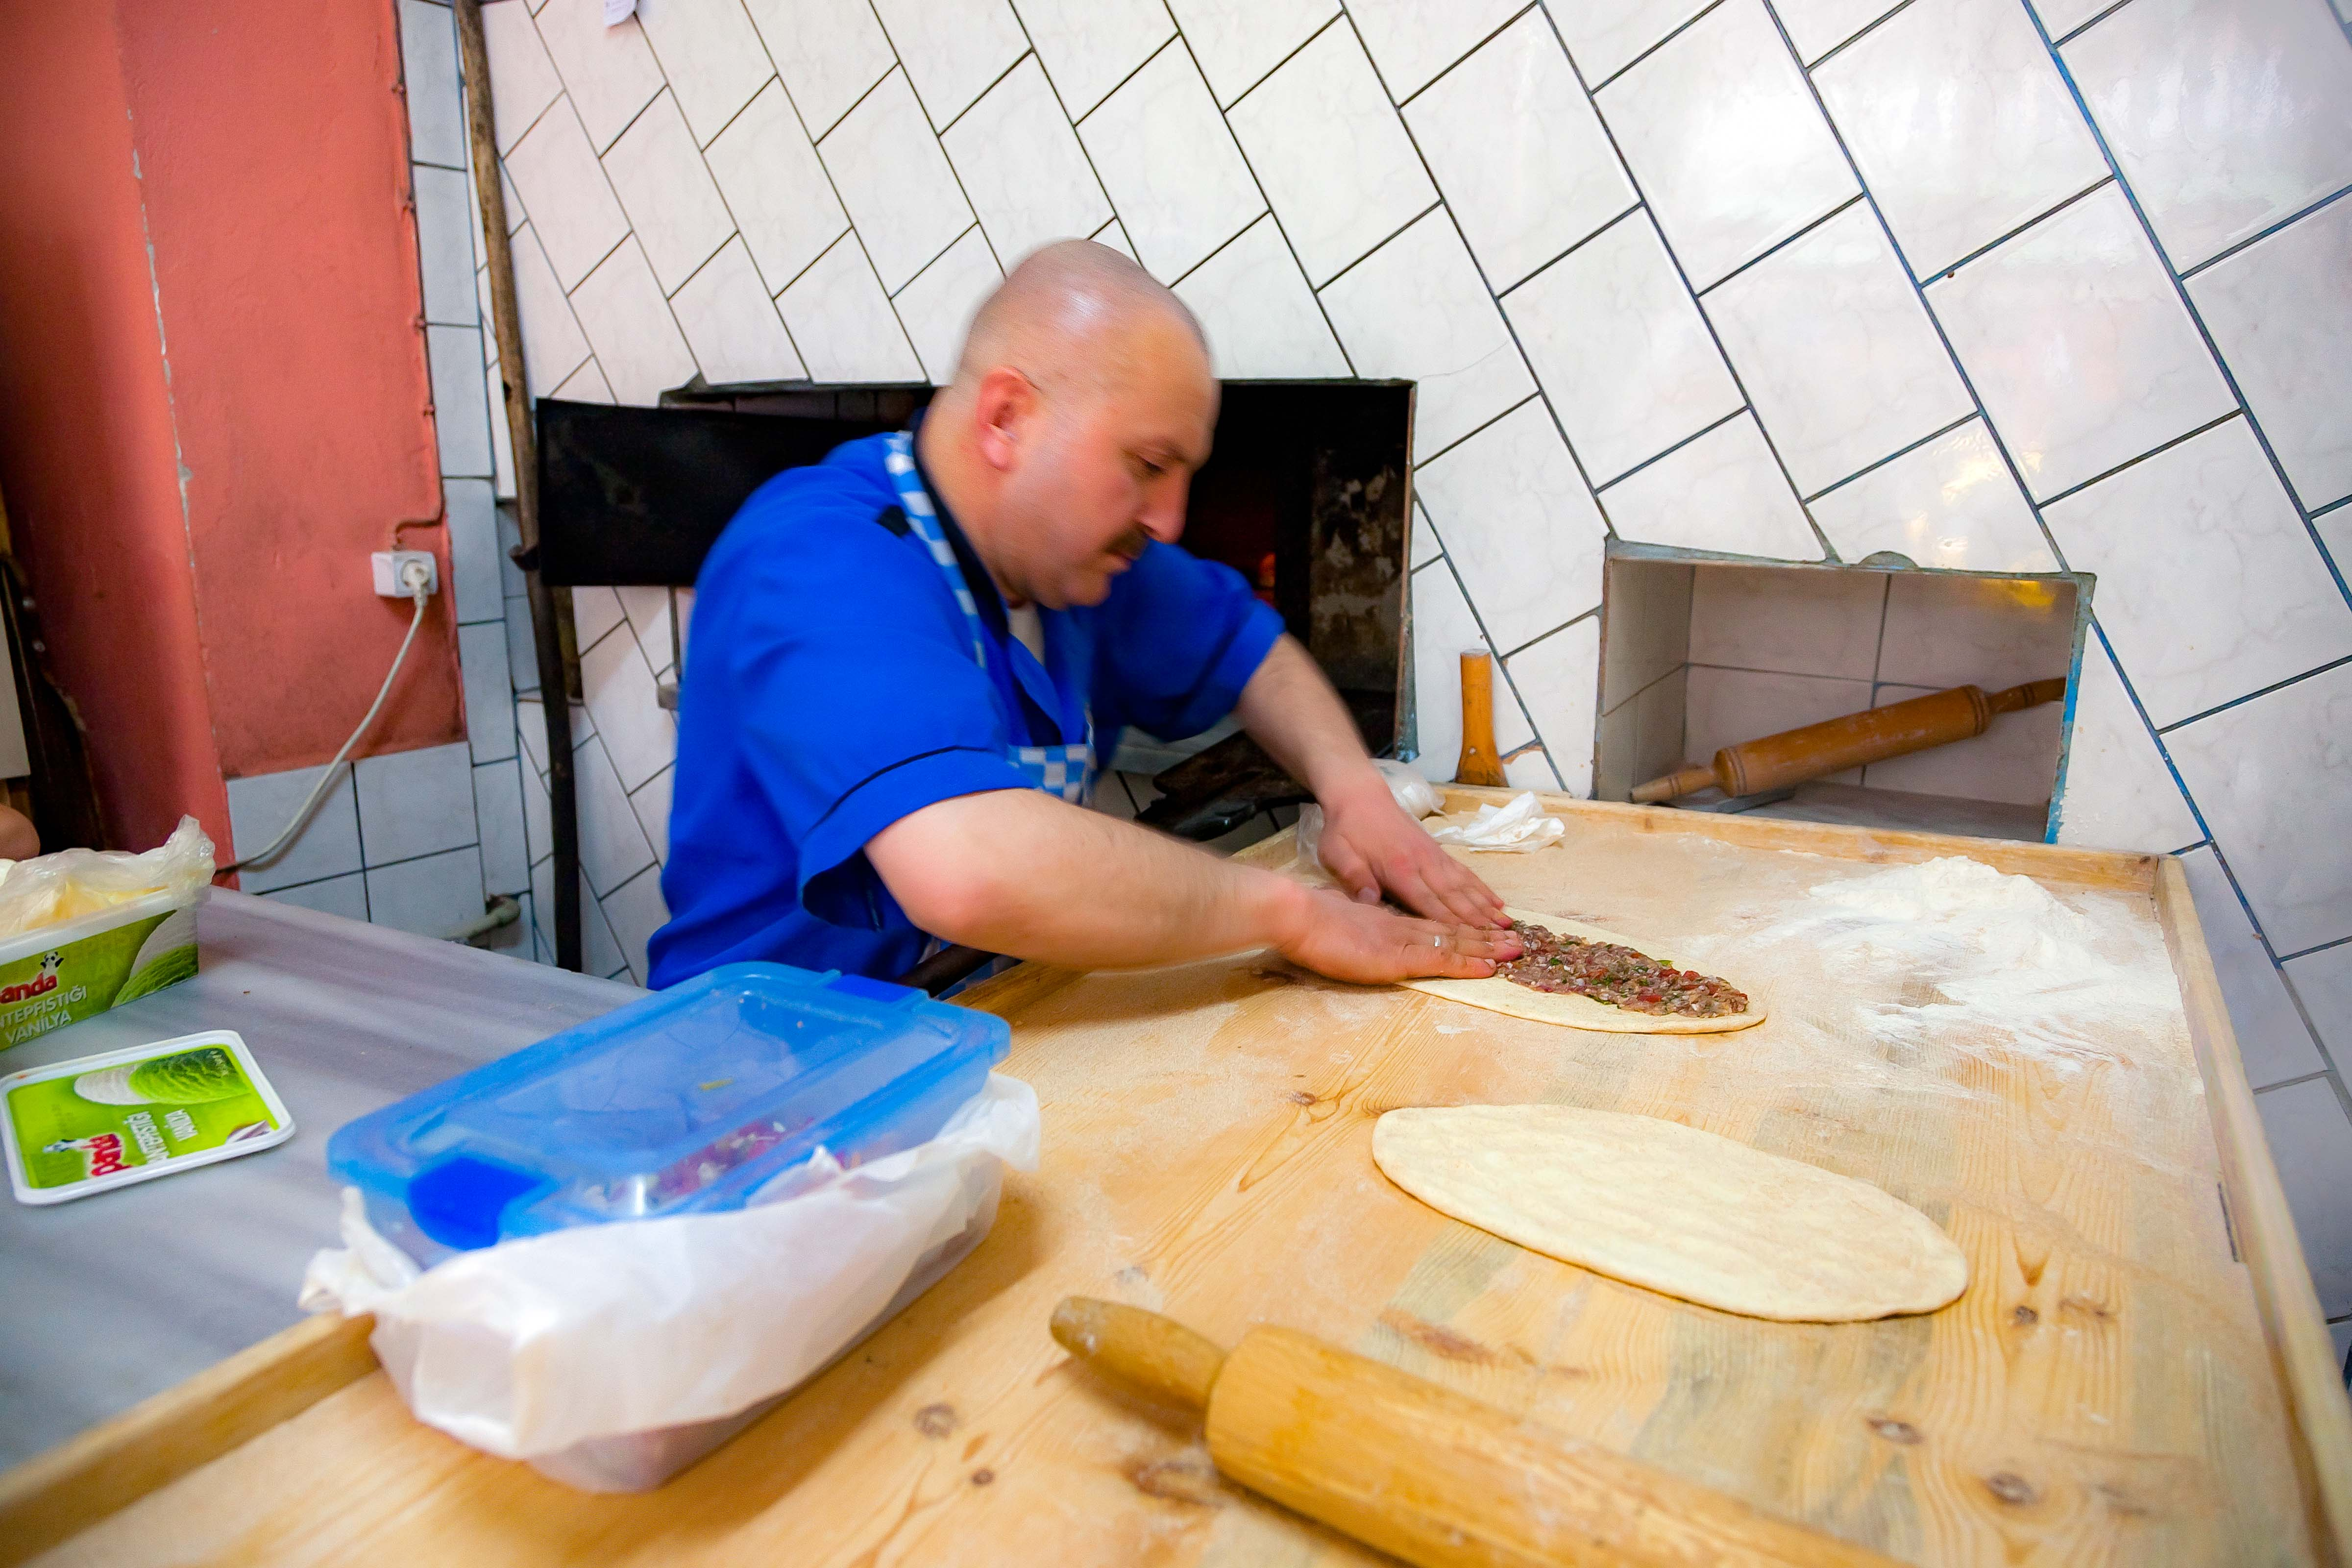 Turkey, Bayburt Prov, Pide Maker, 2010, IMG 7331